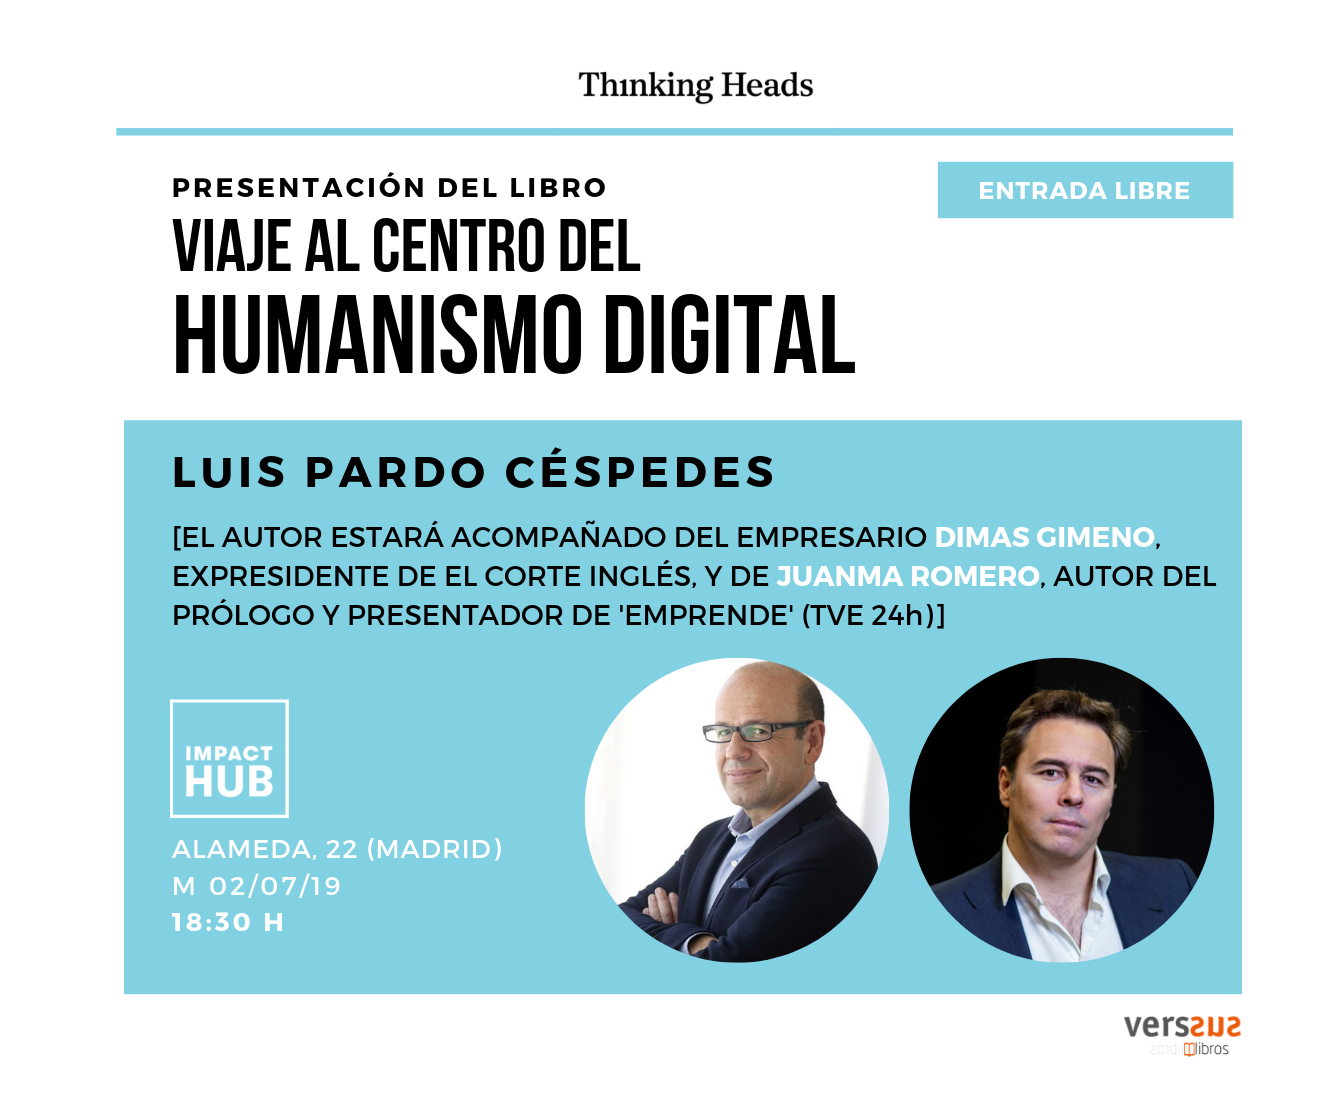 presentacion-libro-humanismo-digital-madrid